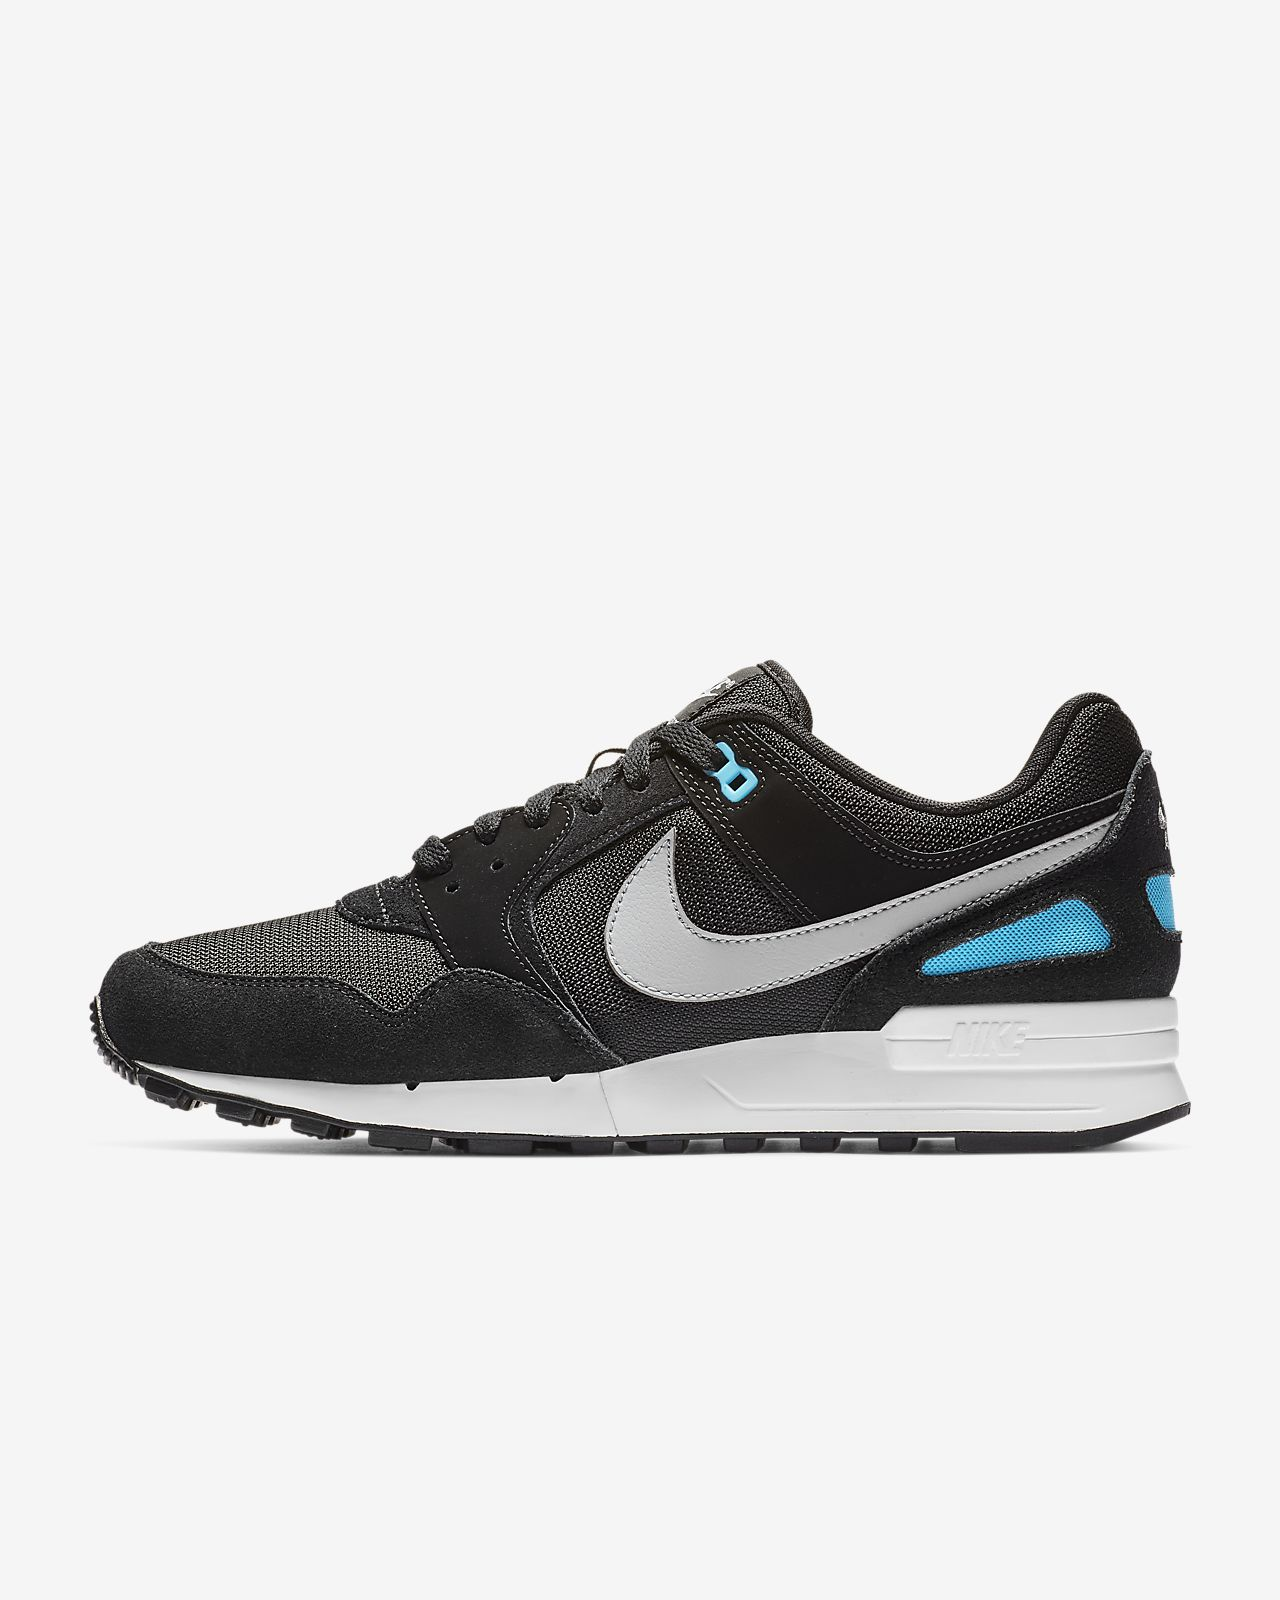 uk availability 5a0c1 10ca7 Sko Nike Air Pegasus 89 för män